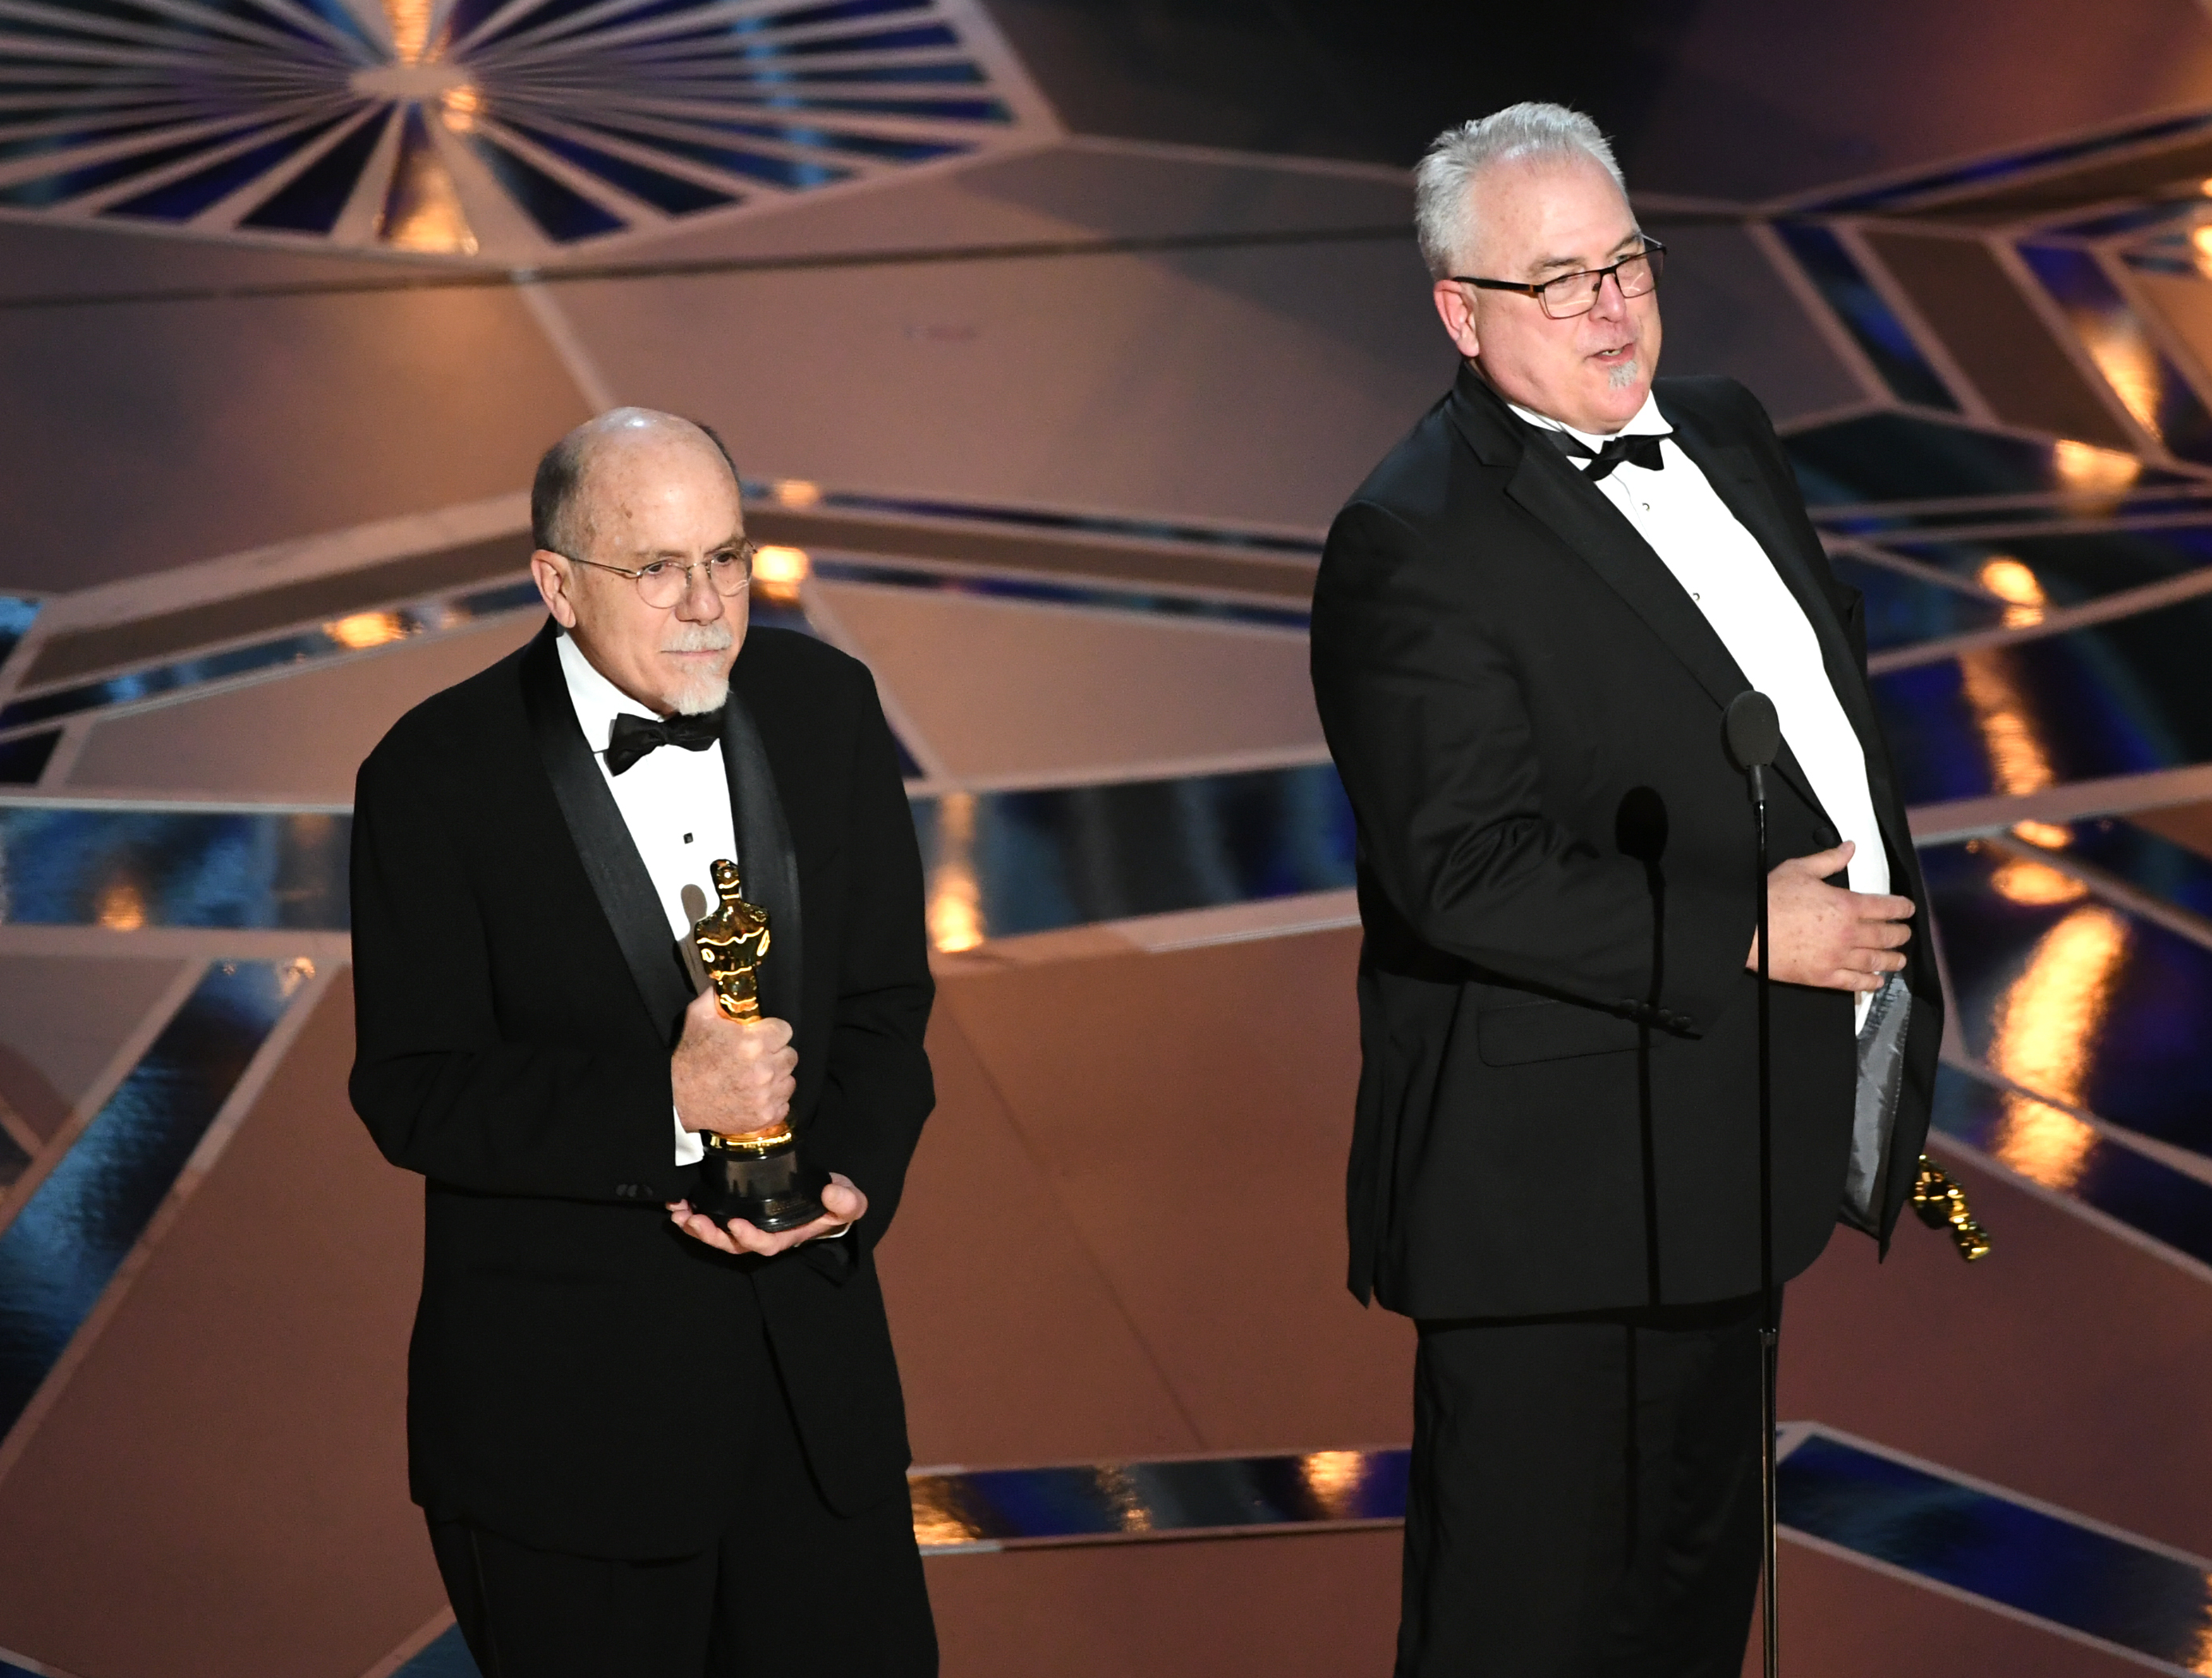 Sound designers Richard King and Alex Gibson accept Best Sound Editing for 'Dunkirk' onstage during the 90th Annual Academy Awards at the Dolby Theatre at Hollywood & Highland Center on March 4, 2018 in Hollywood.